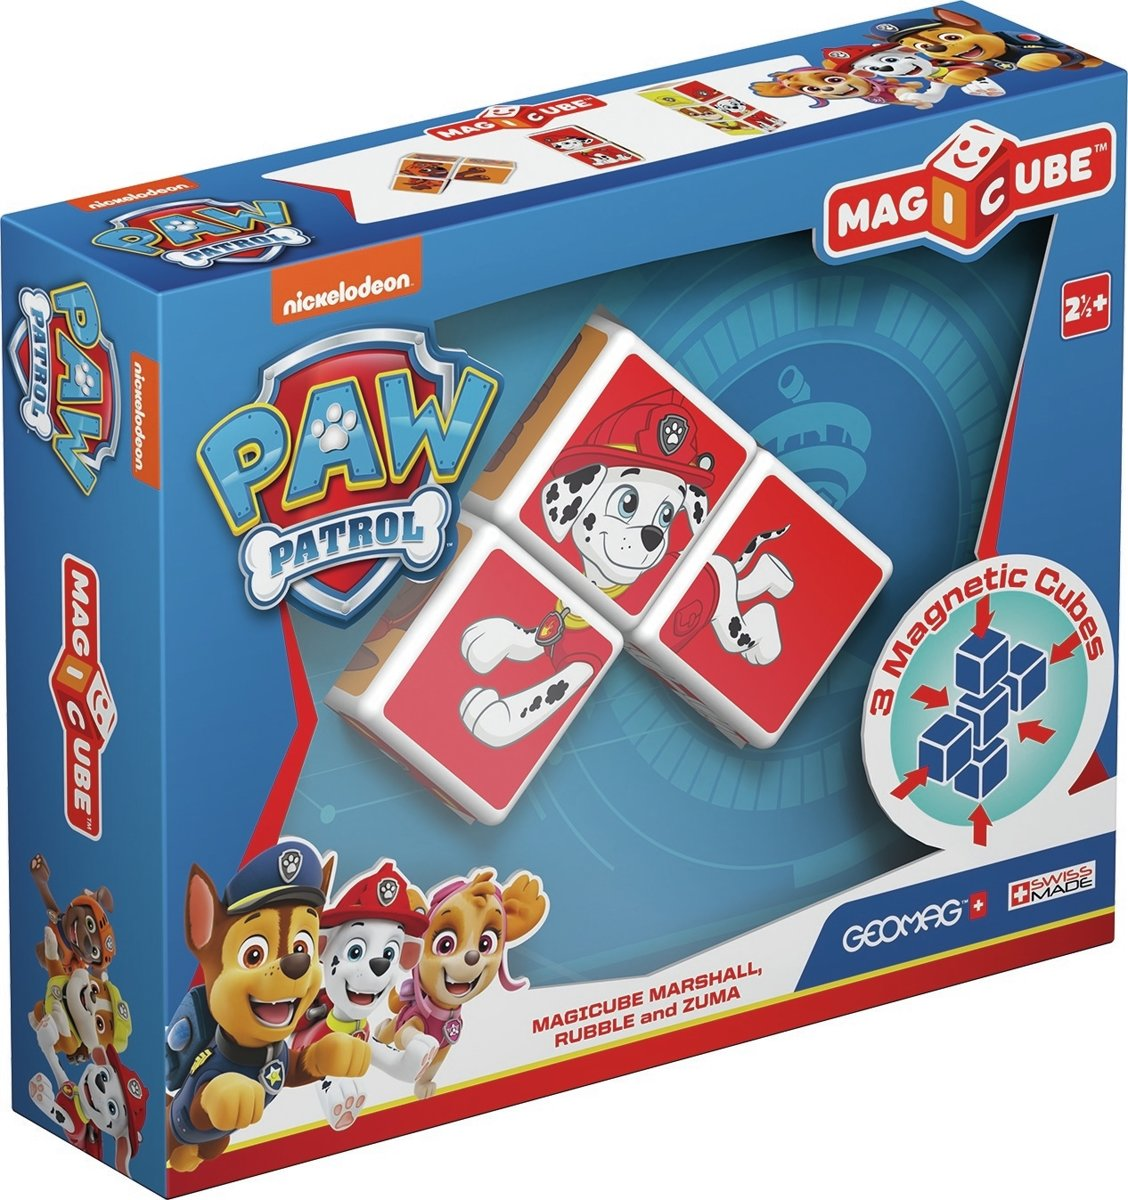 Geomag MagiCube Paw Patrol Marshall, Rubble and Zuma - 3 delig